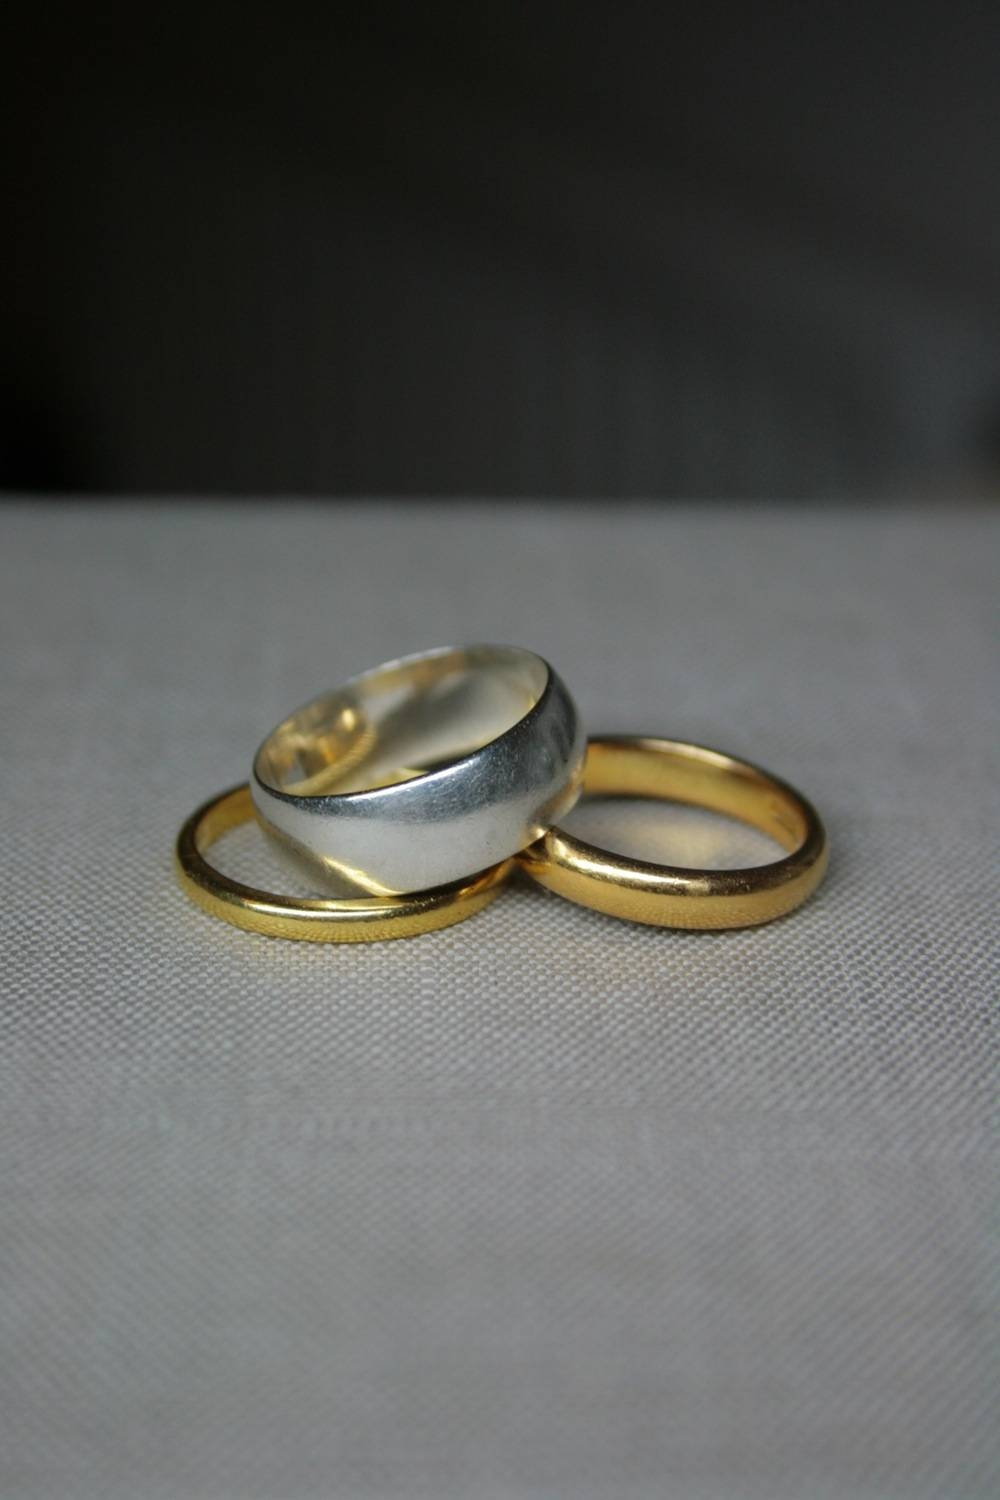 Louisa Slade » 30Th Anniversary Rings Throughout Current 30Th Anniversary Rings (View 4 of 25)